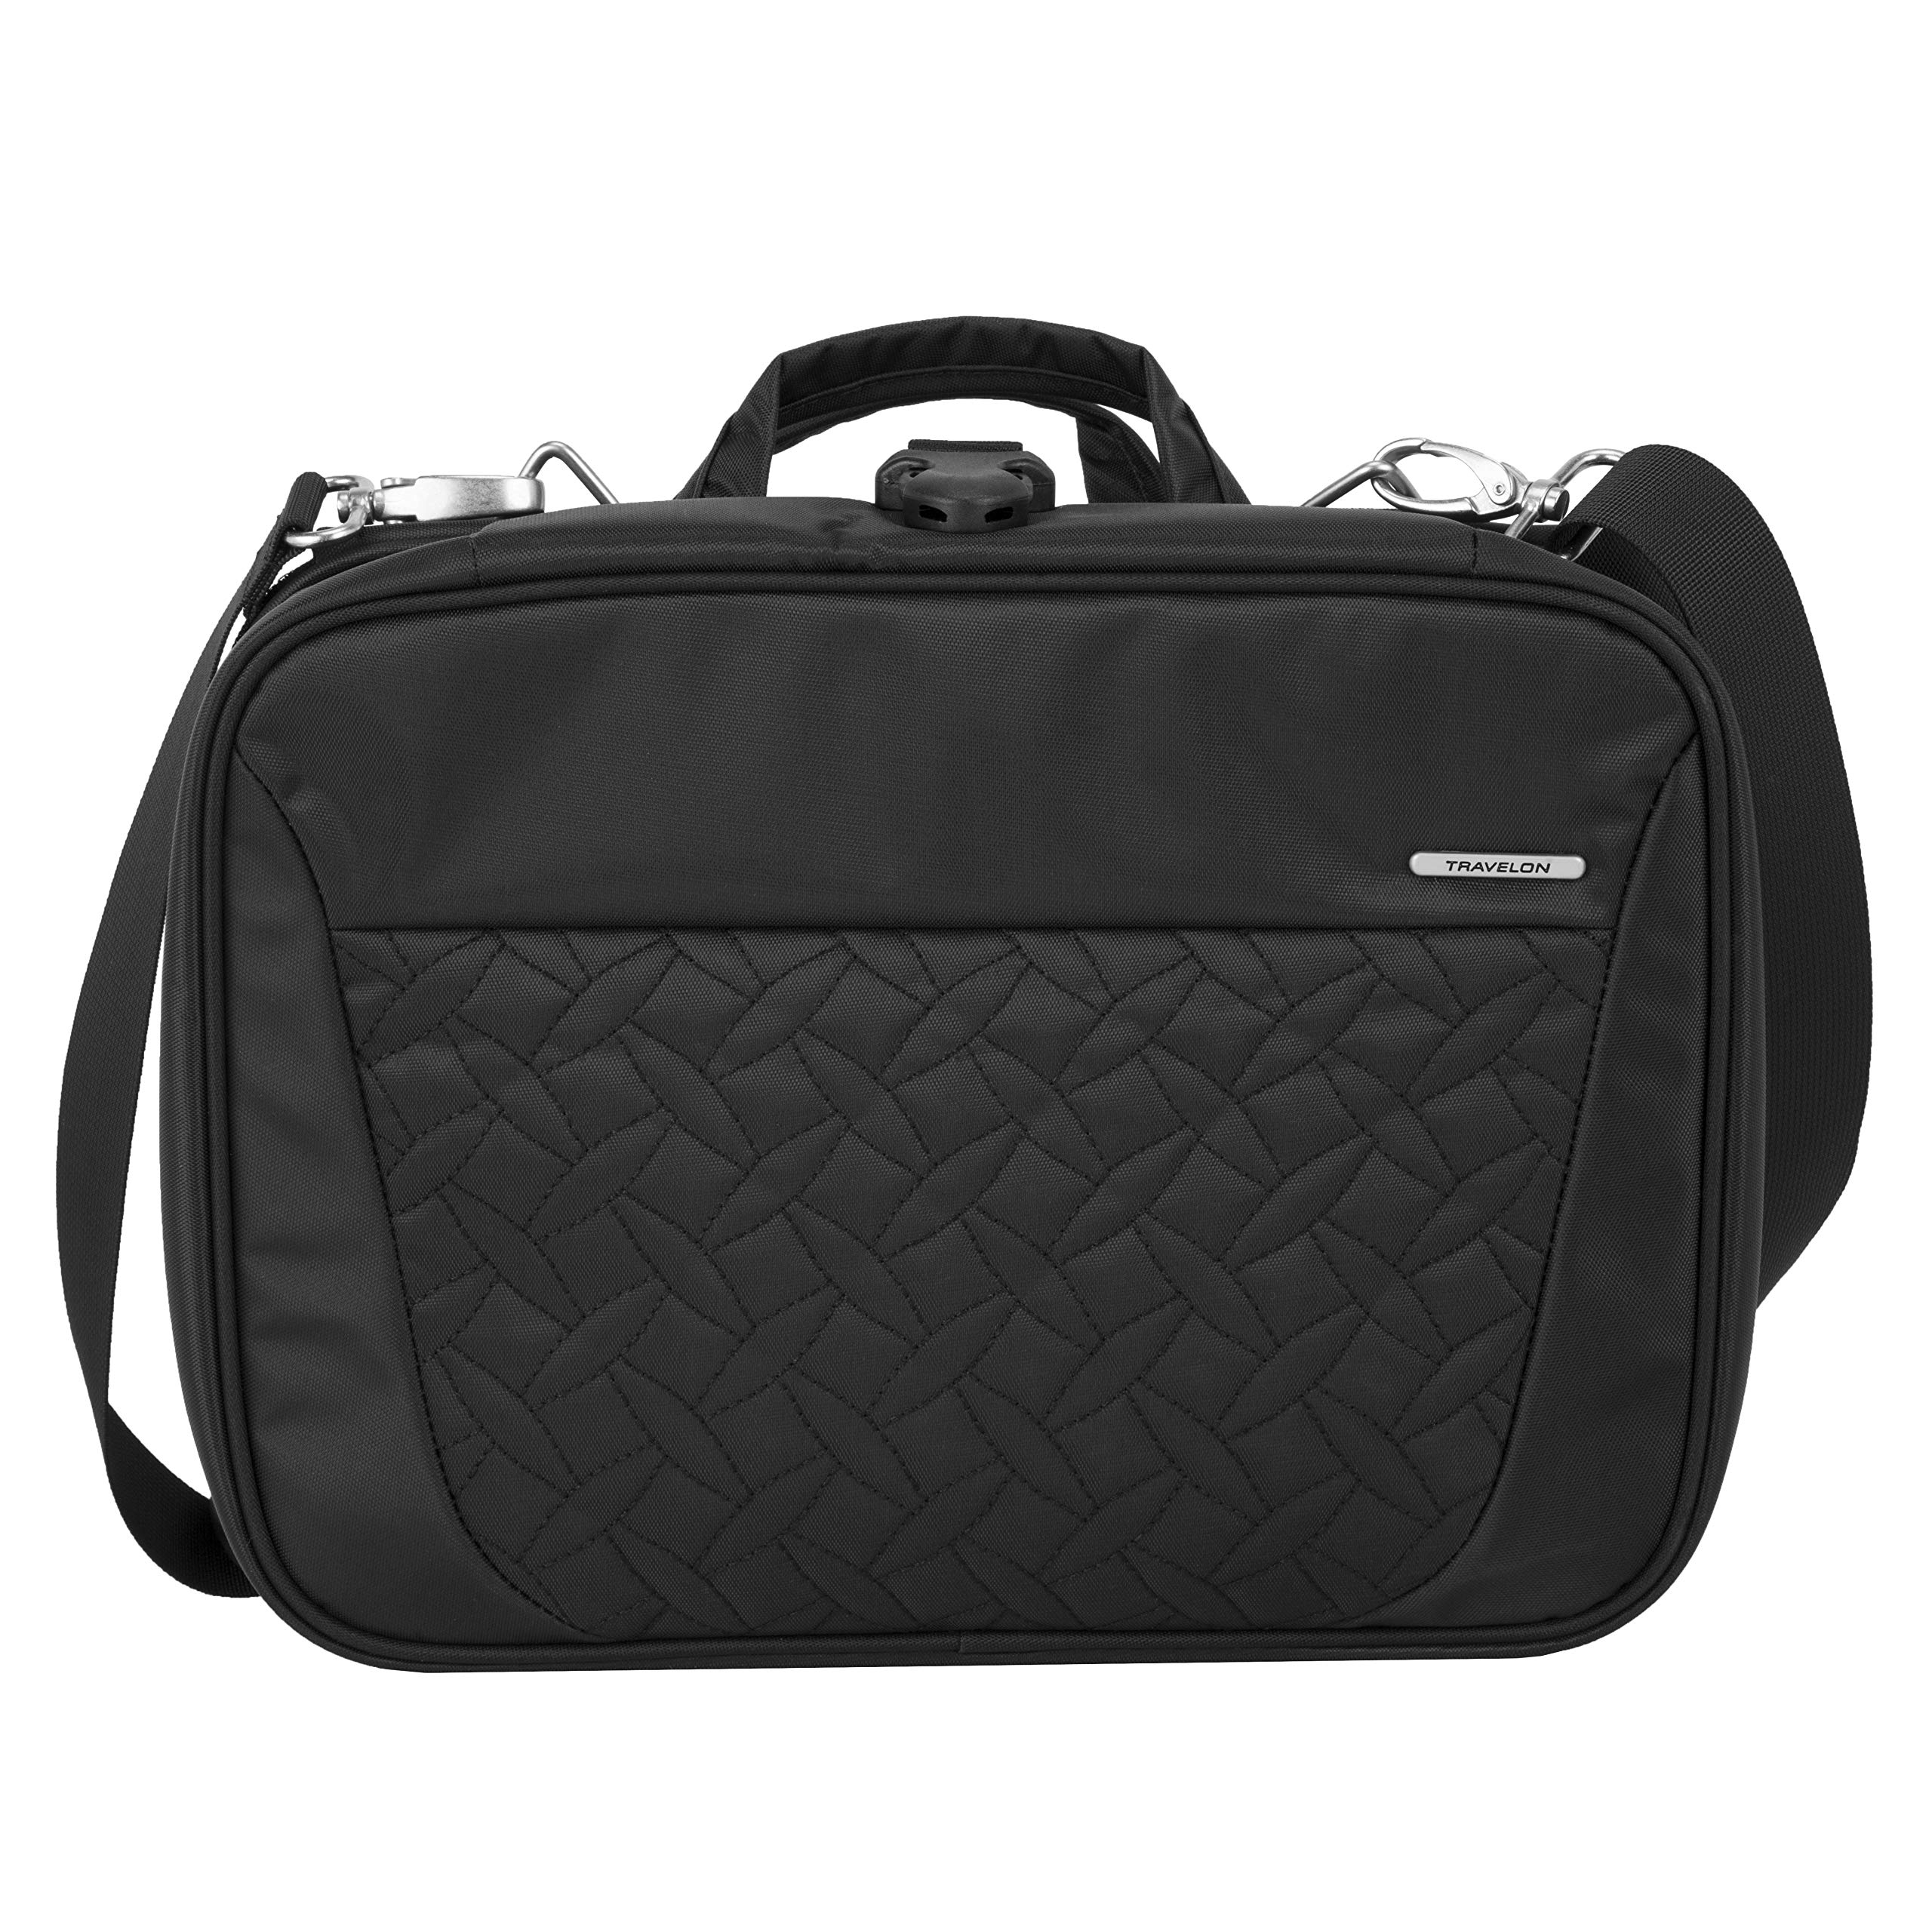 Travelon: Total Toiletry Kit - Black by Travelon